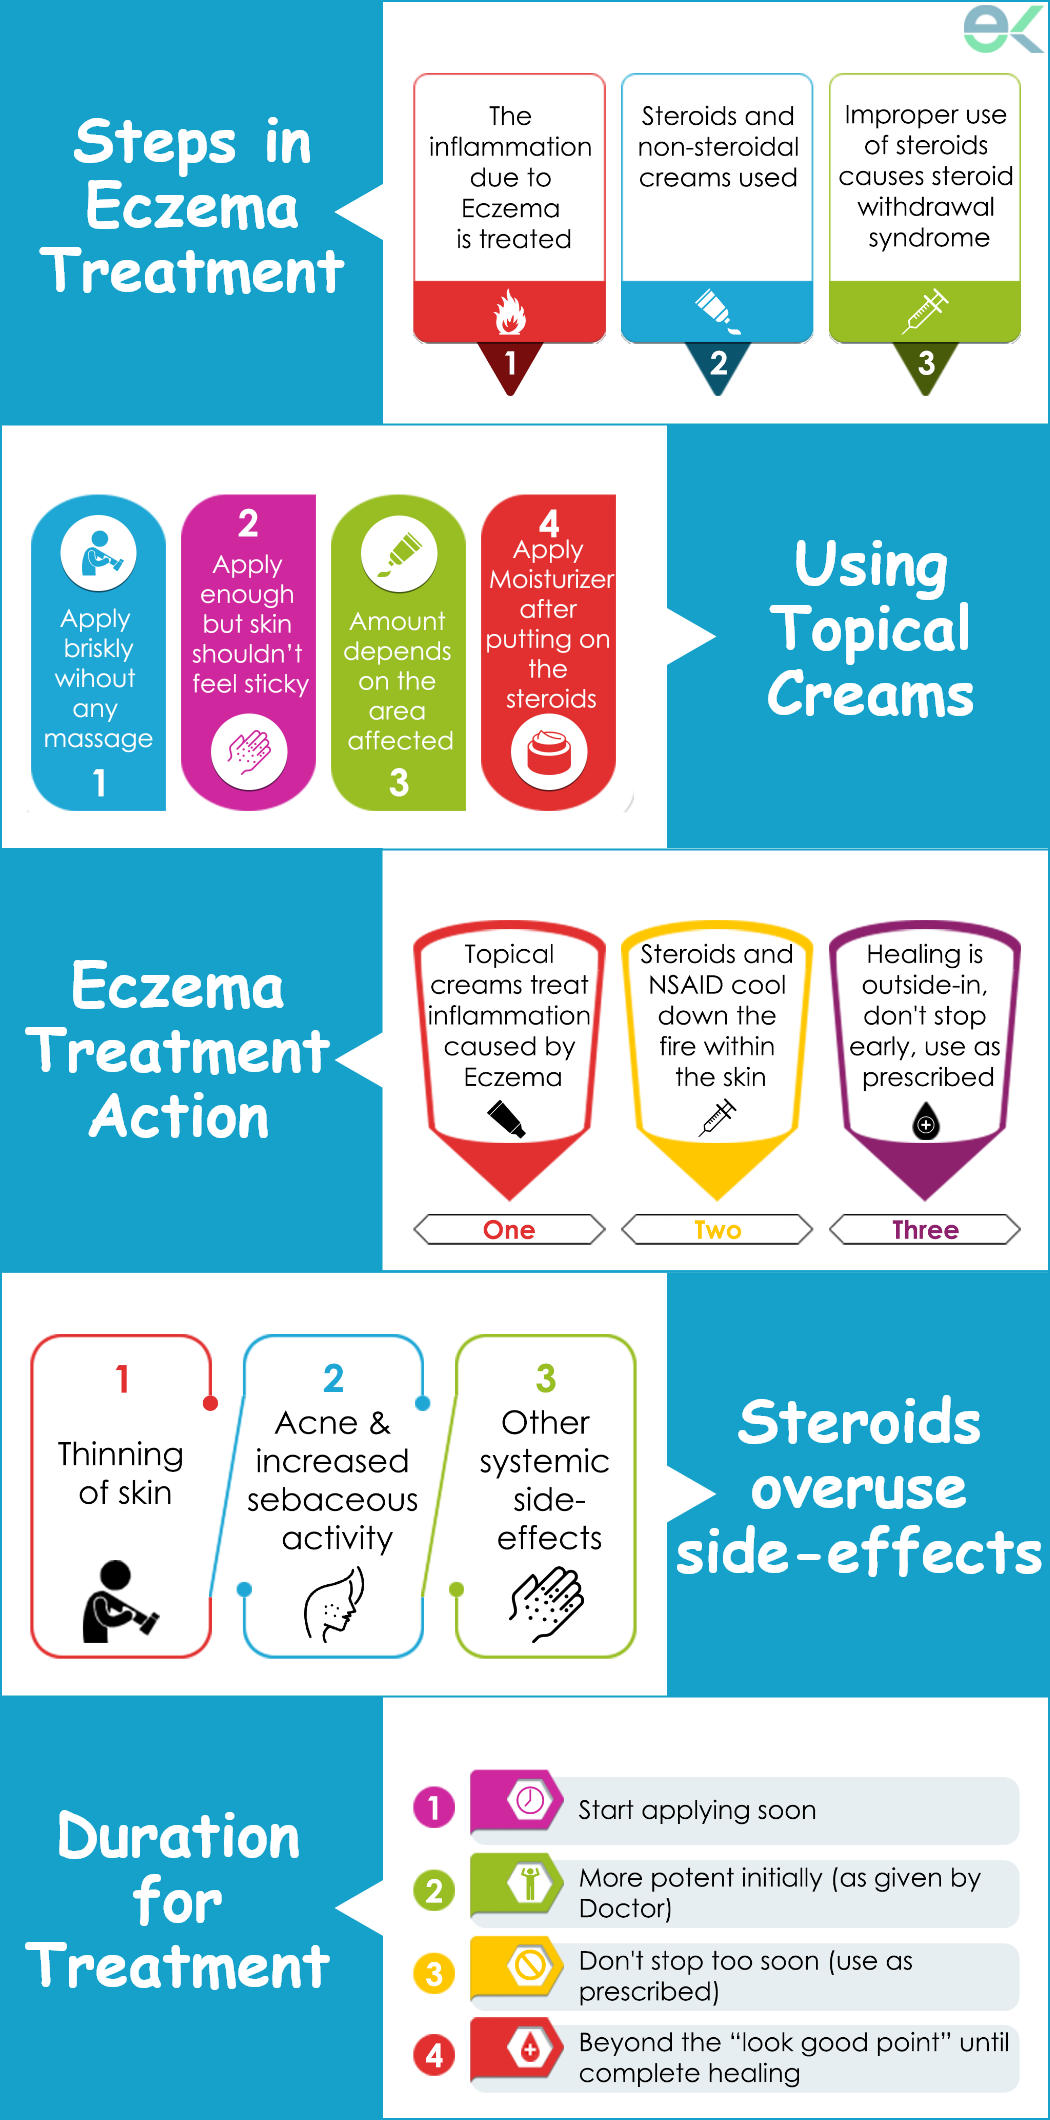 Using topical creams in Eczema